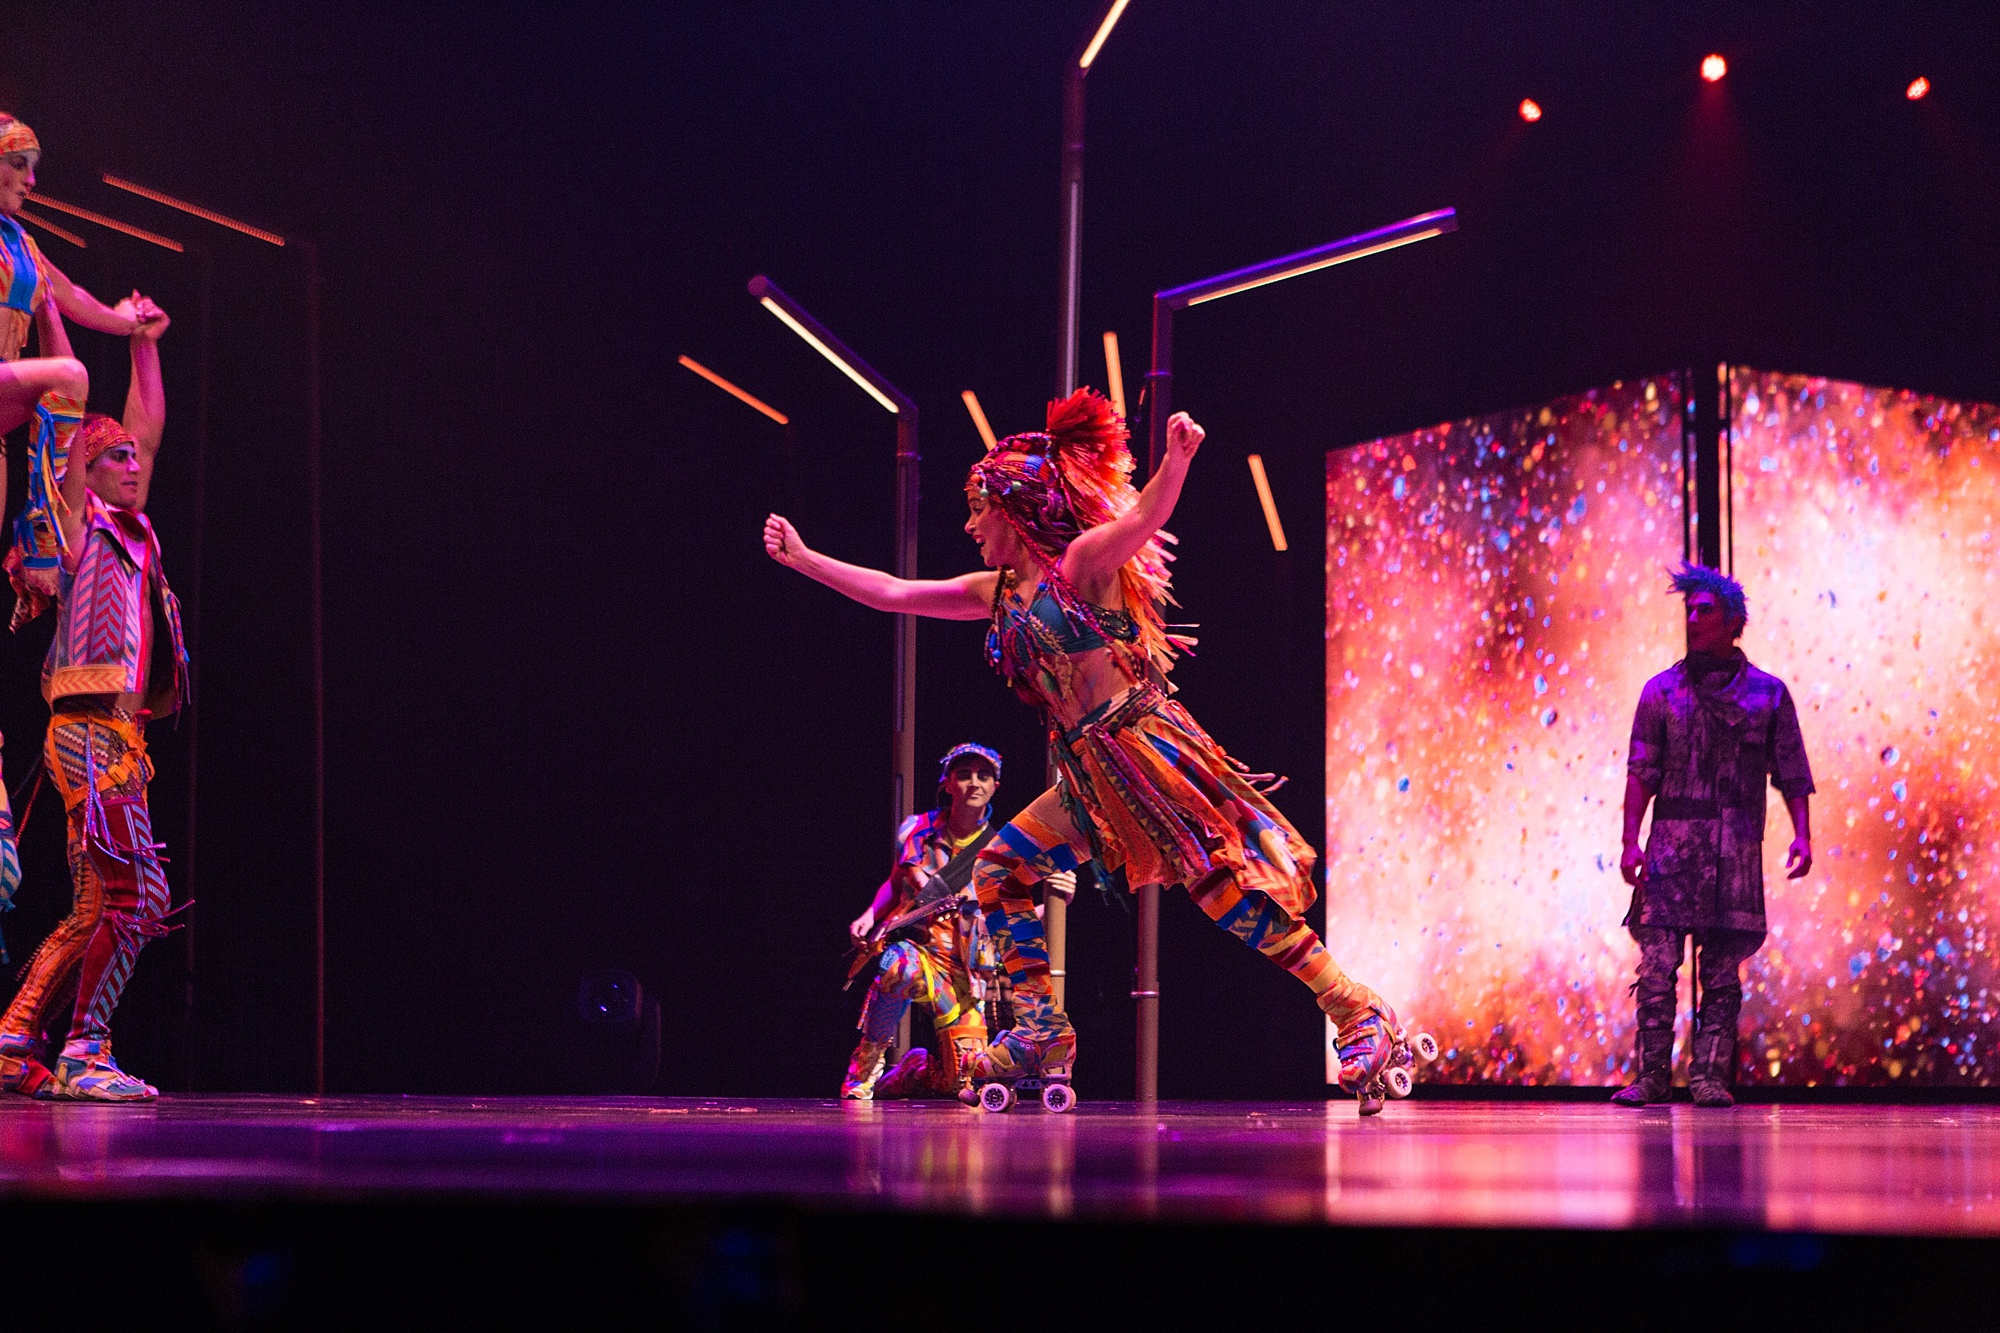 Joe_Mac_Creative_cirque_du_soleil_volta_Greater Philadelphia_Expo_Center_Oaks_PA_Visit_Valley _Forge_0011.jpg